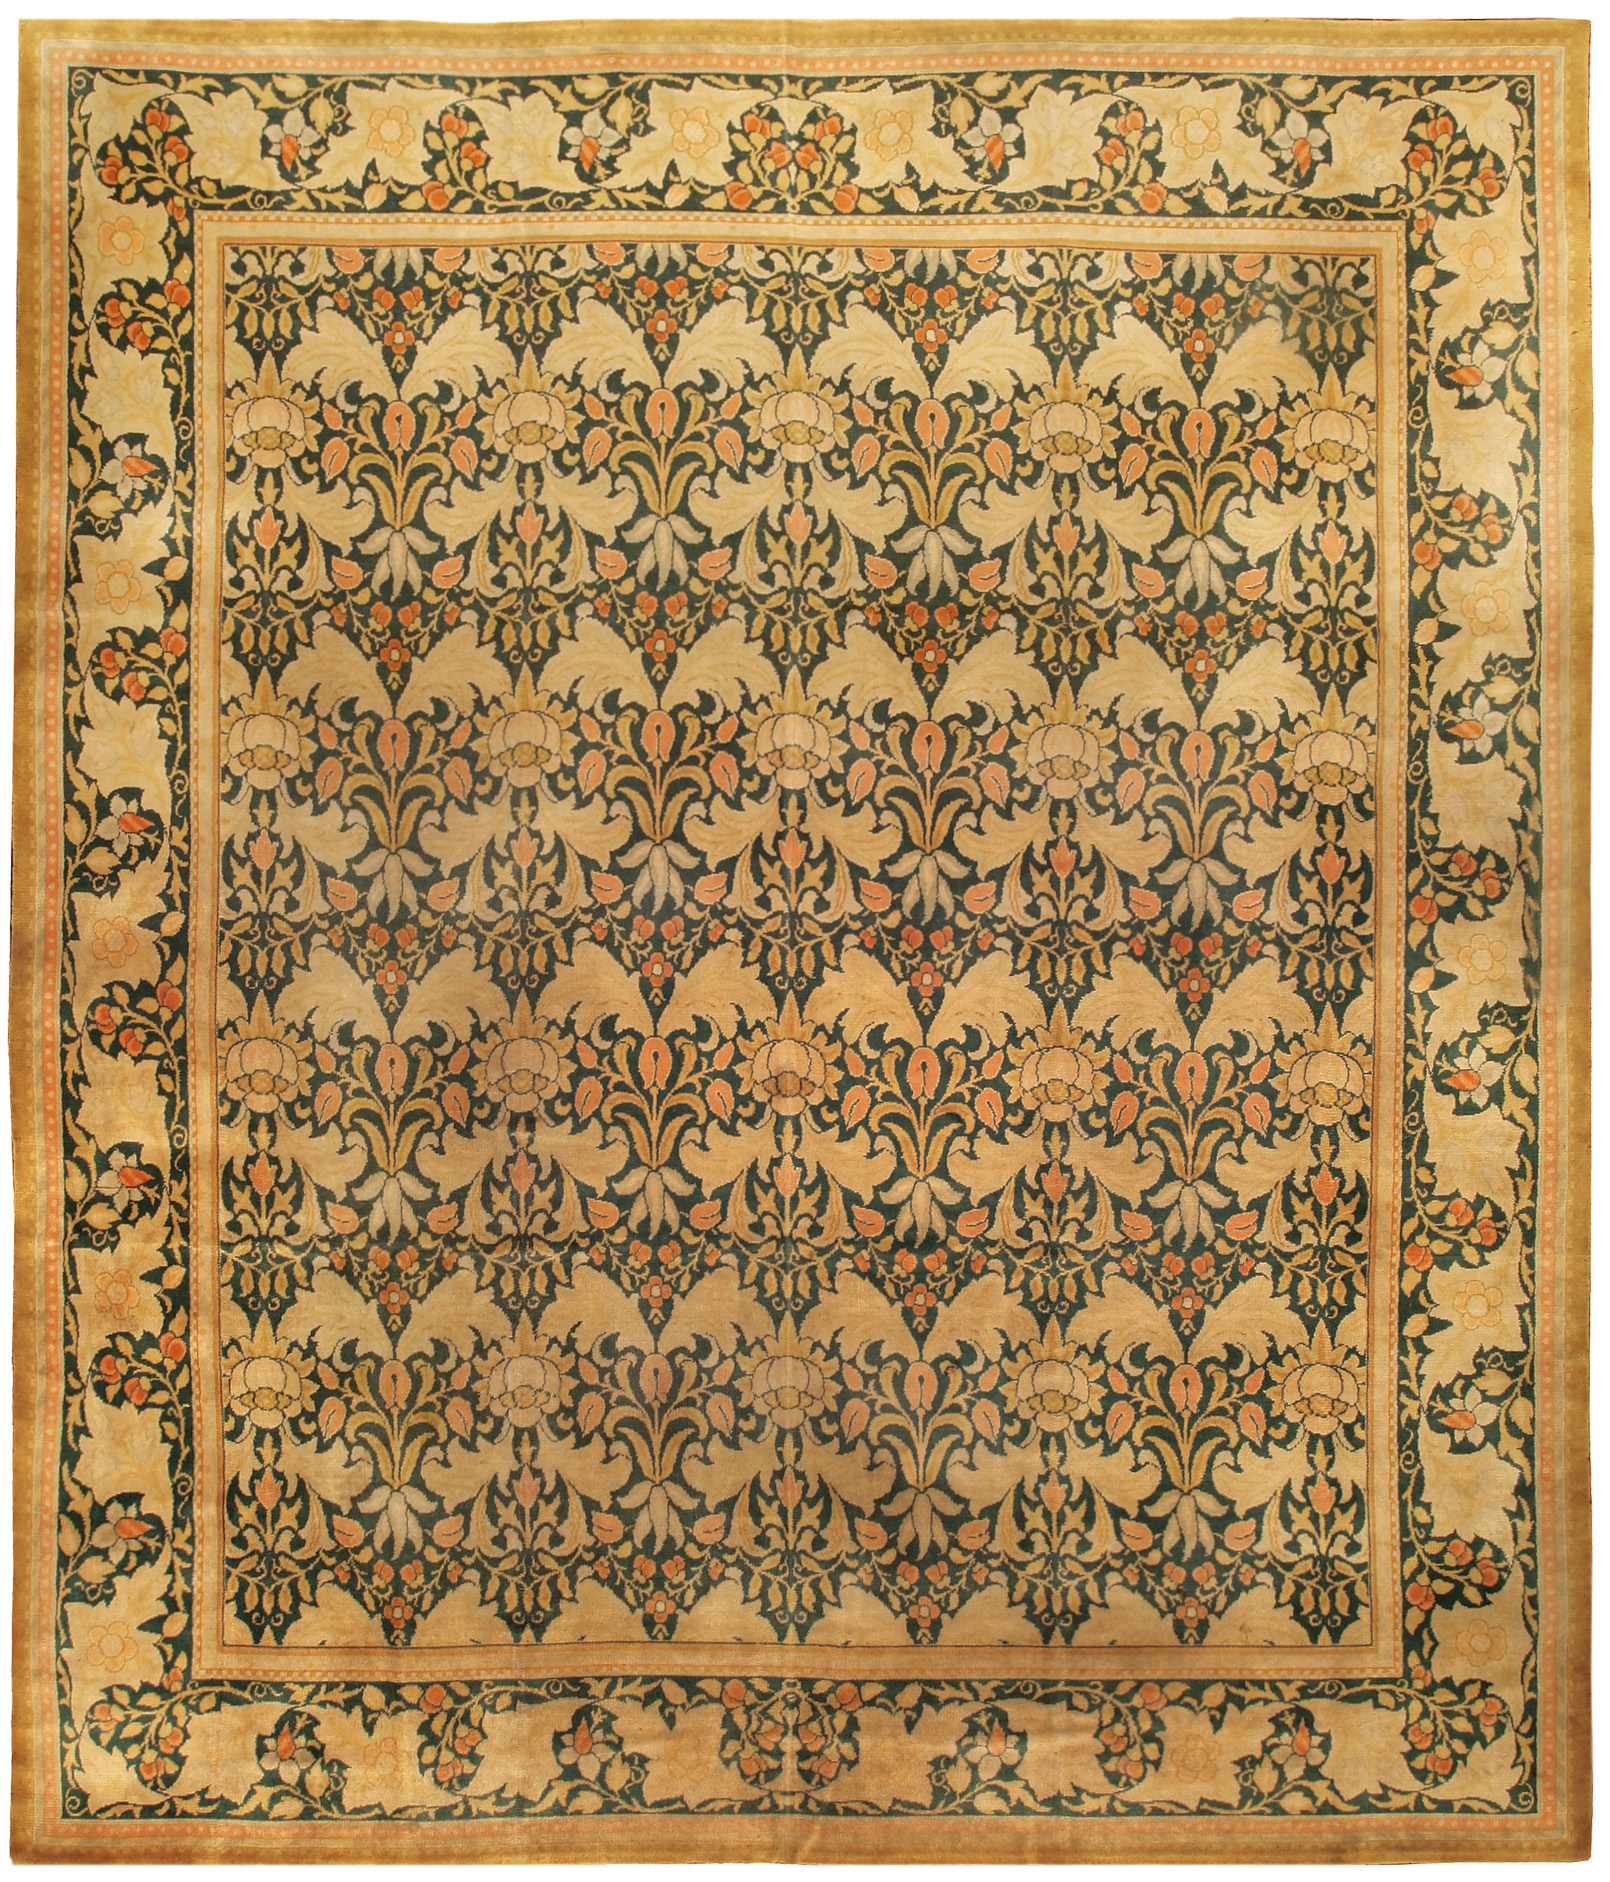 Vintage William Morris style Carpet BB0234